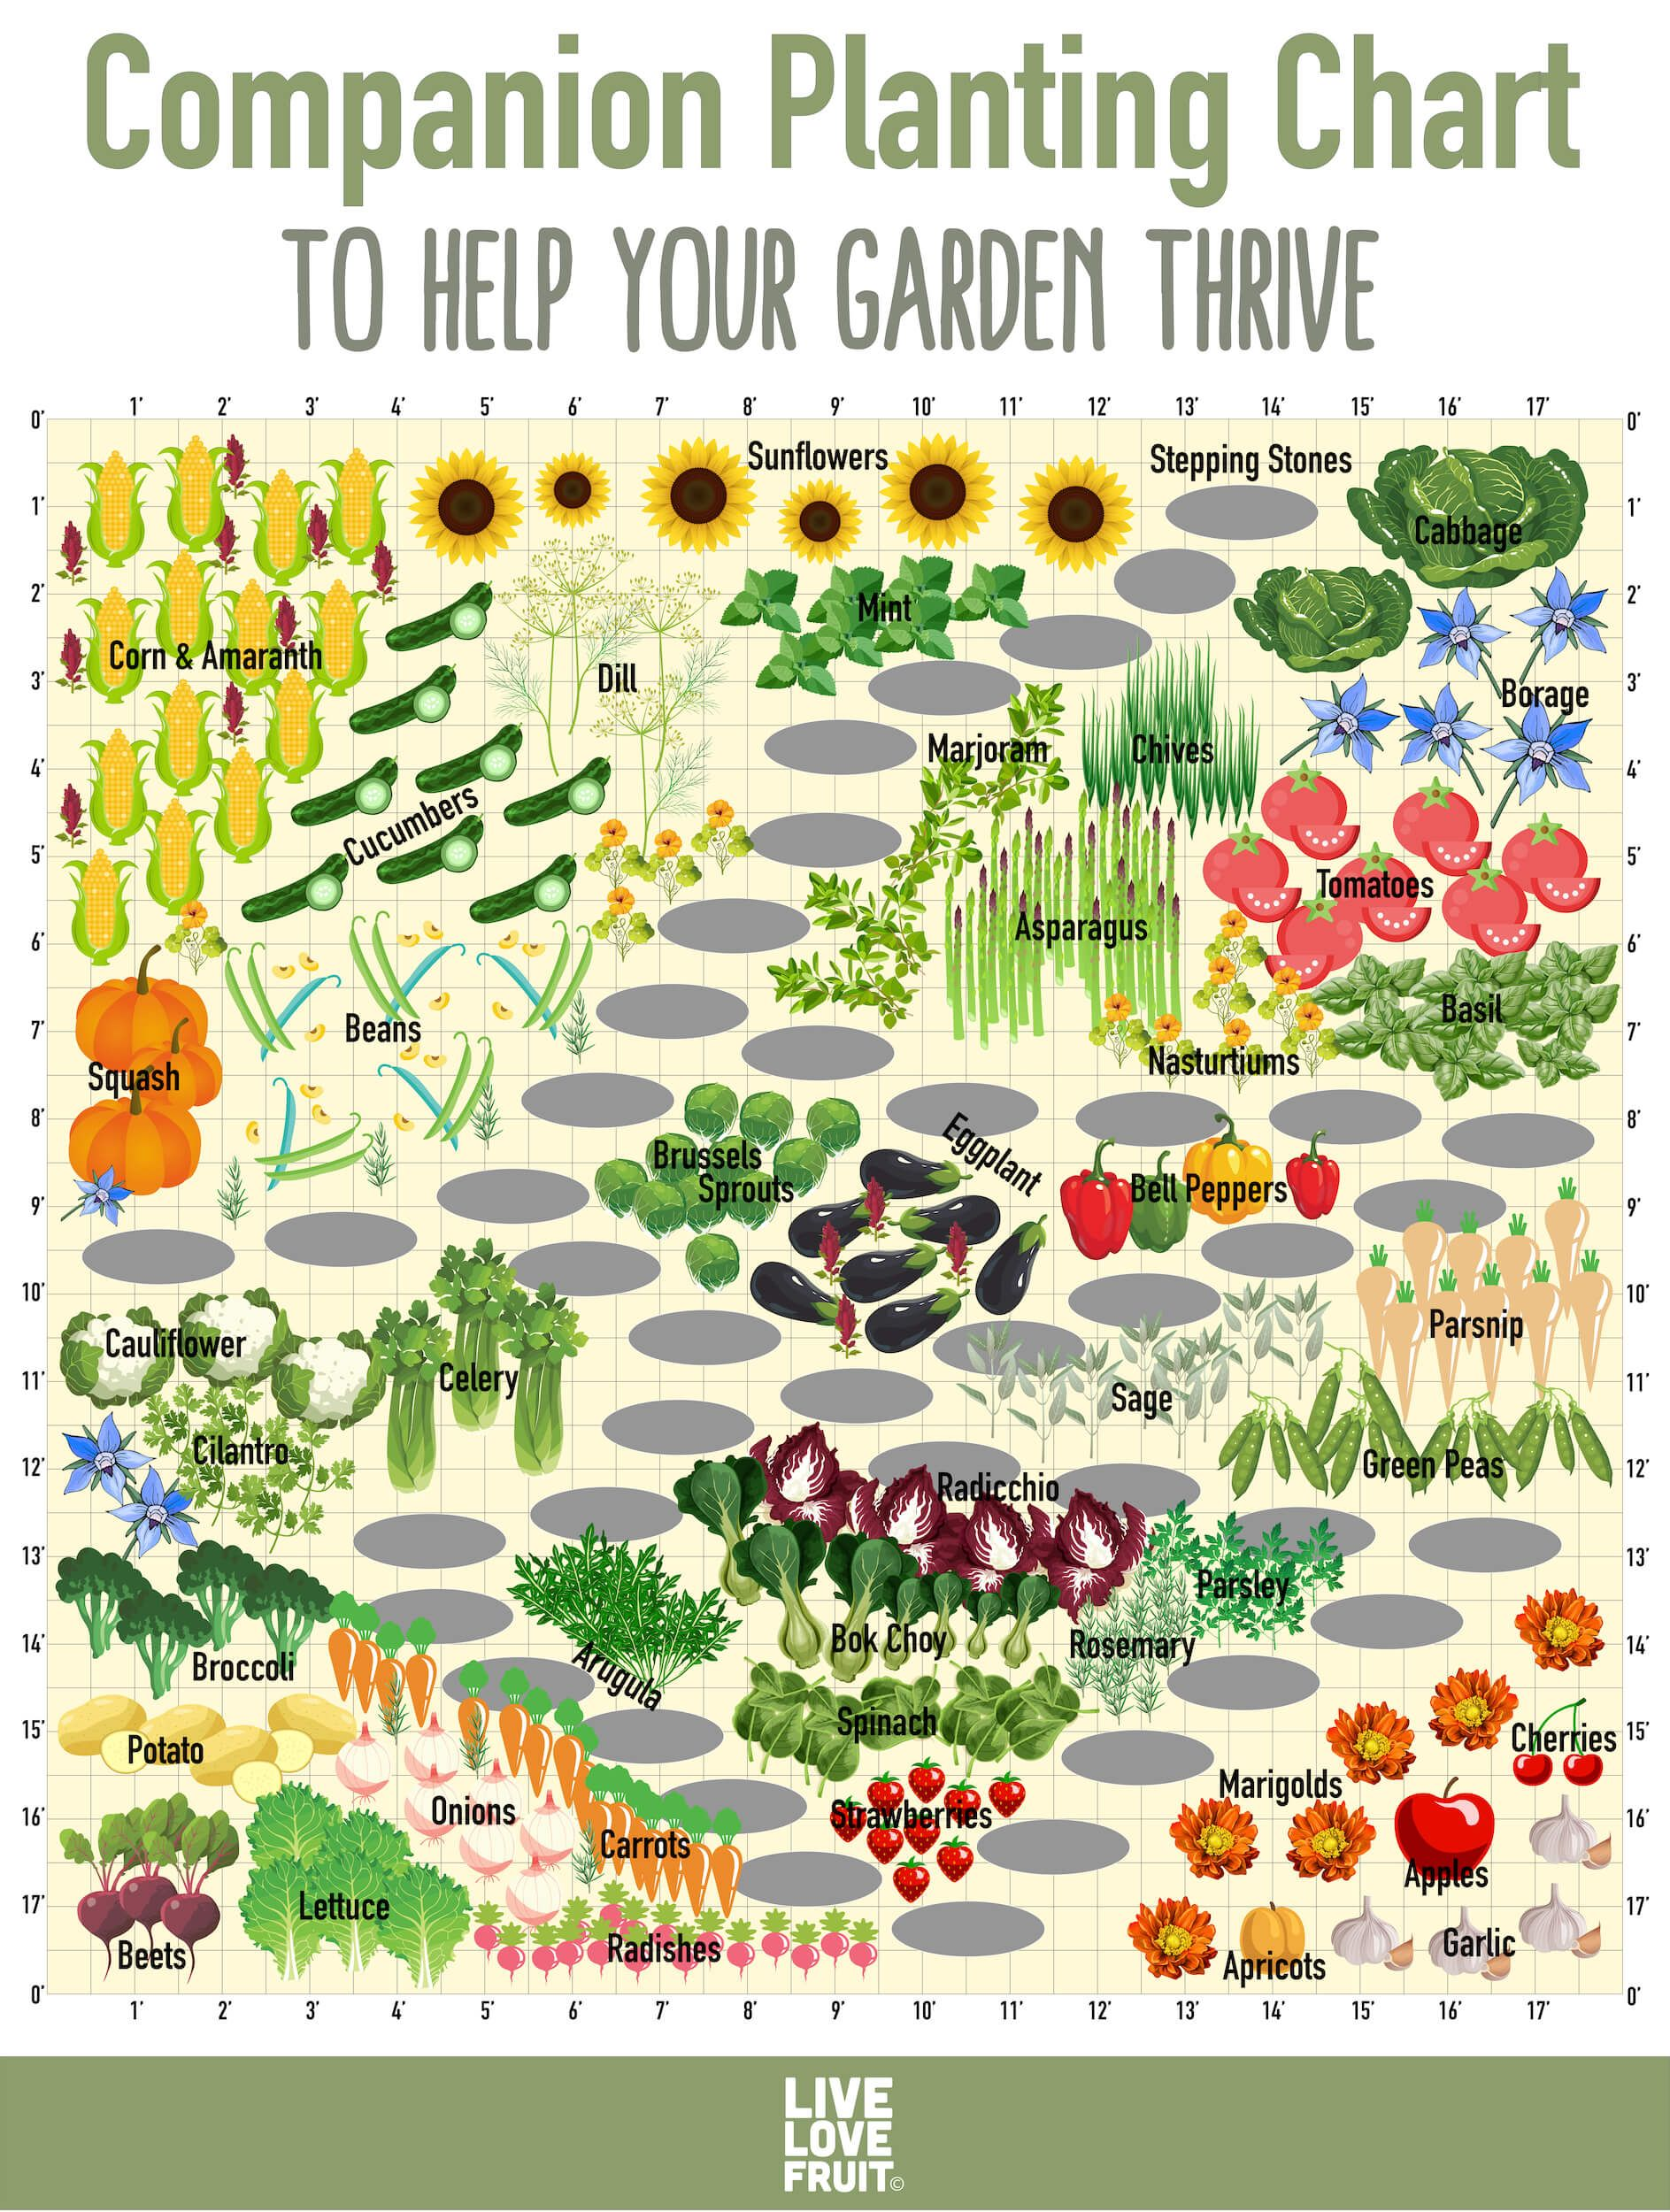 Find out which fruit and vegetables should and shouldnt be planted together with our companion planting chart for some of the most popular garden foods